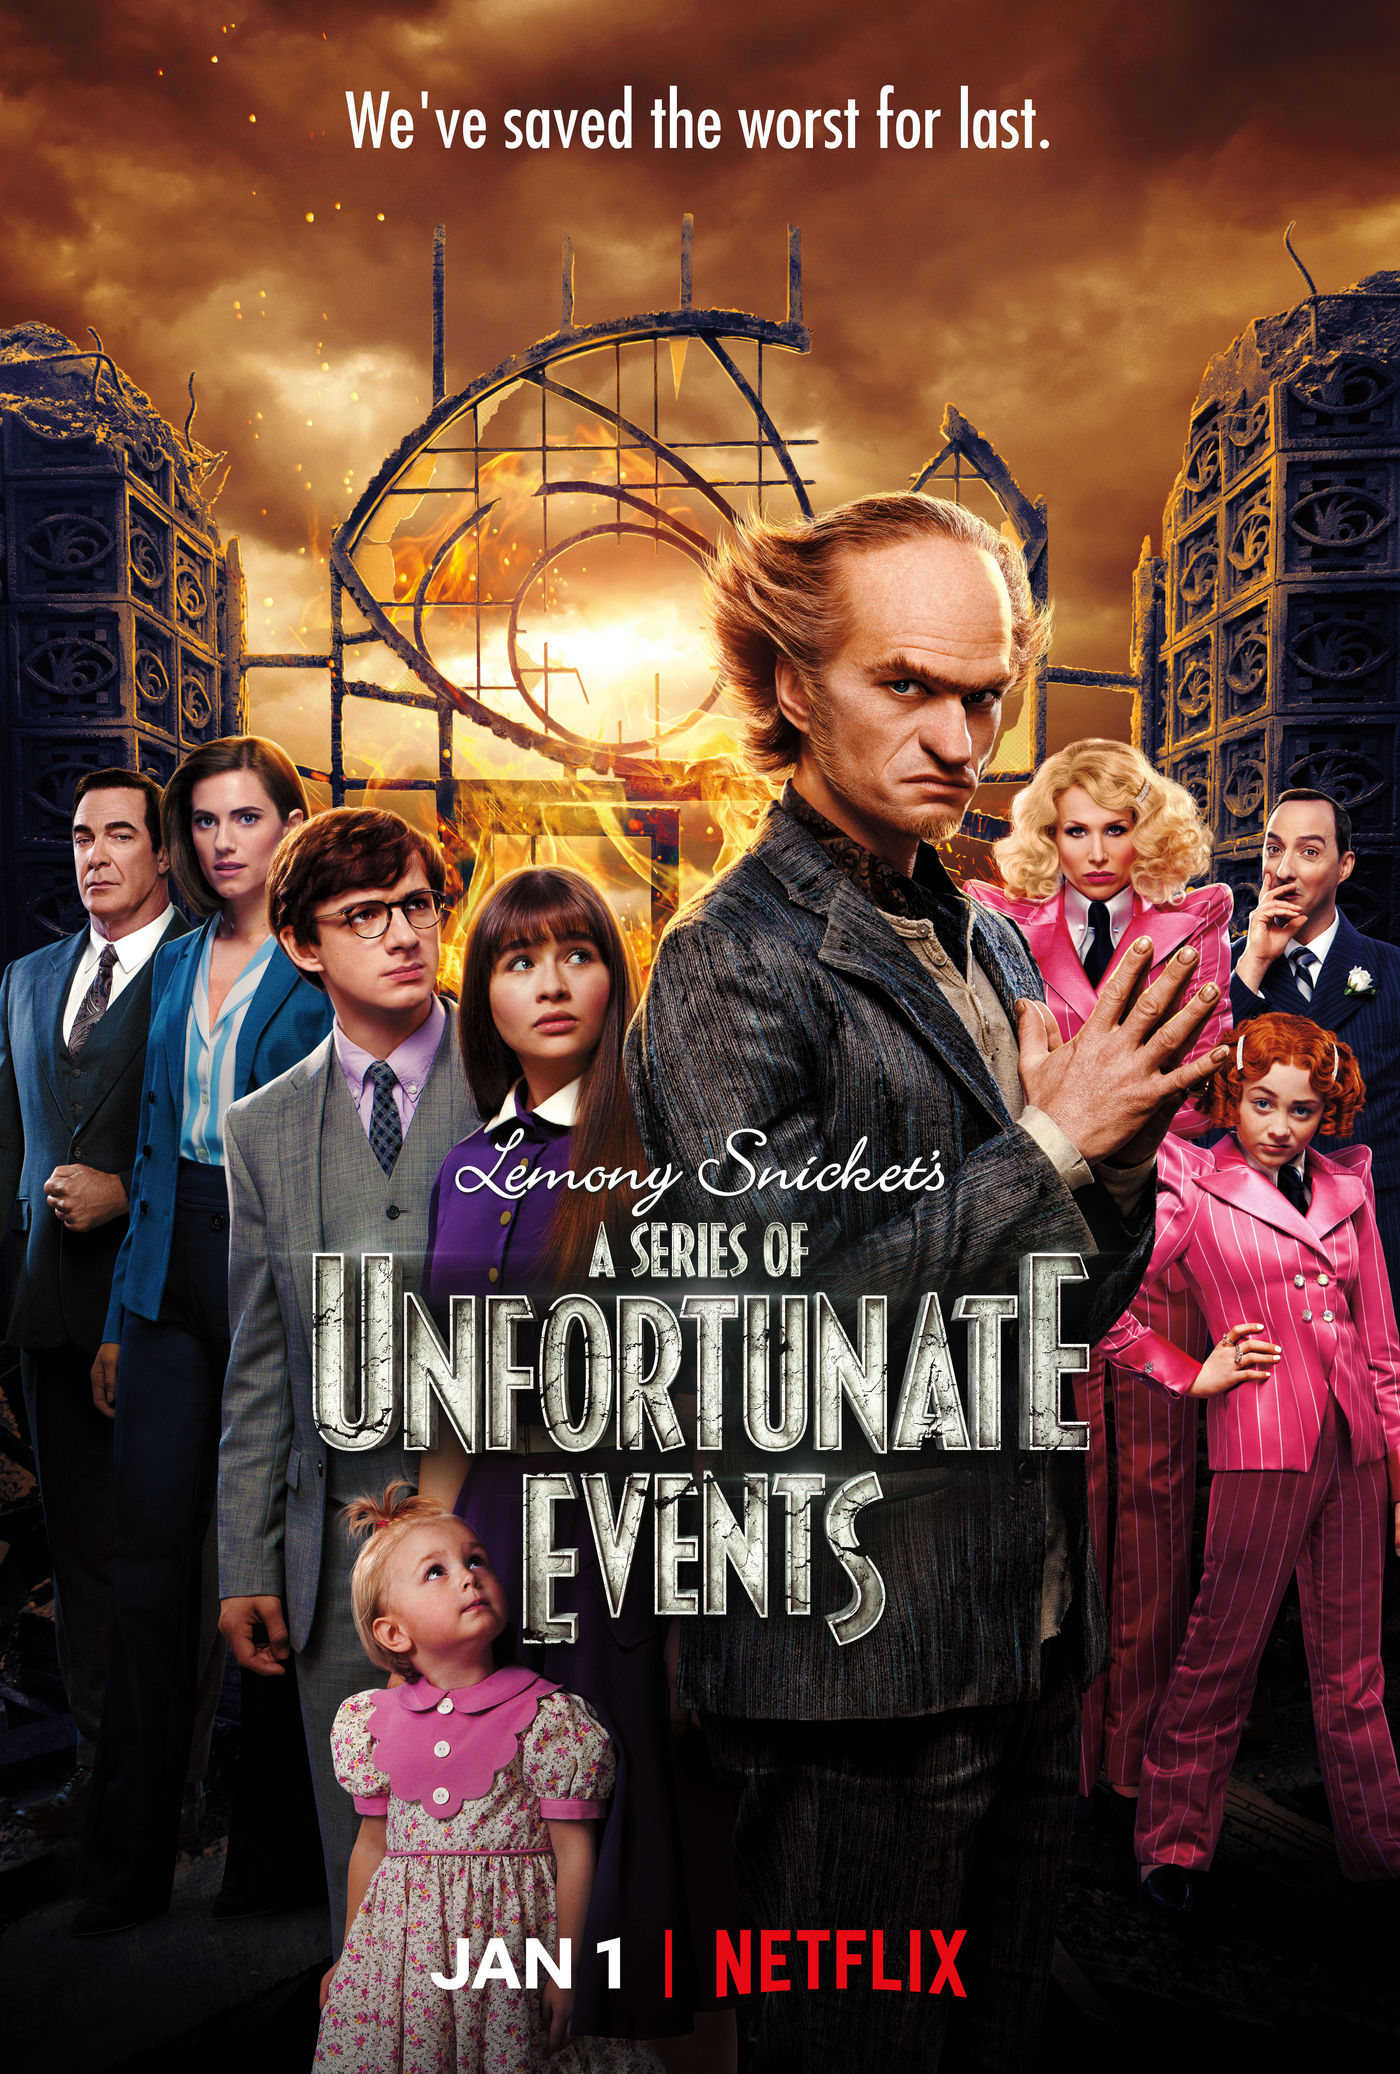 A Series Of Unfortunate Events The Baudelaire Orphans Meet Kit